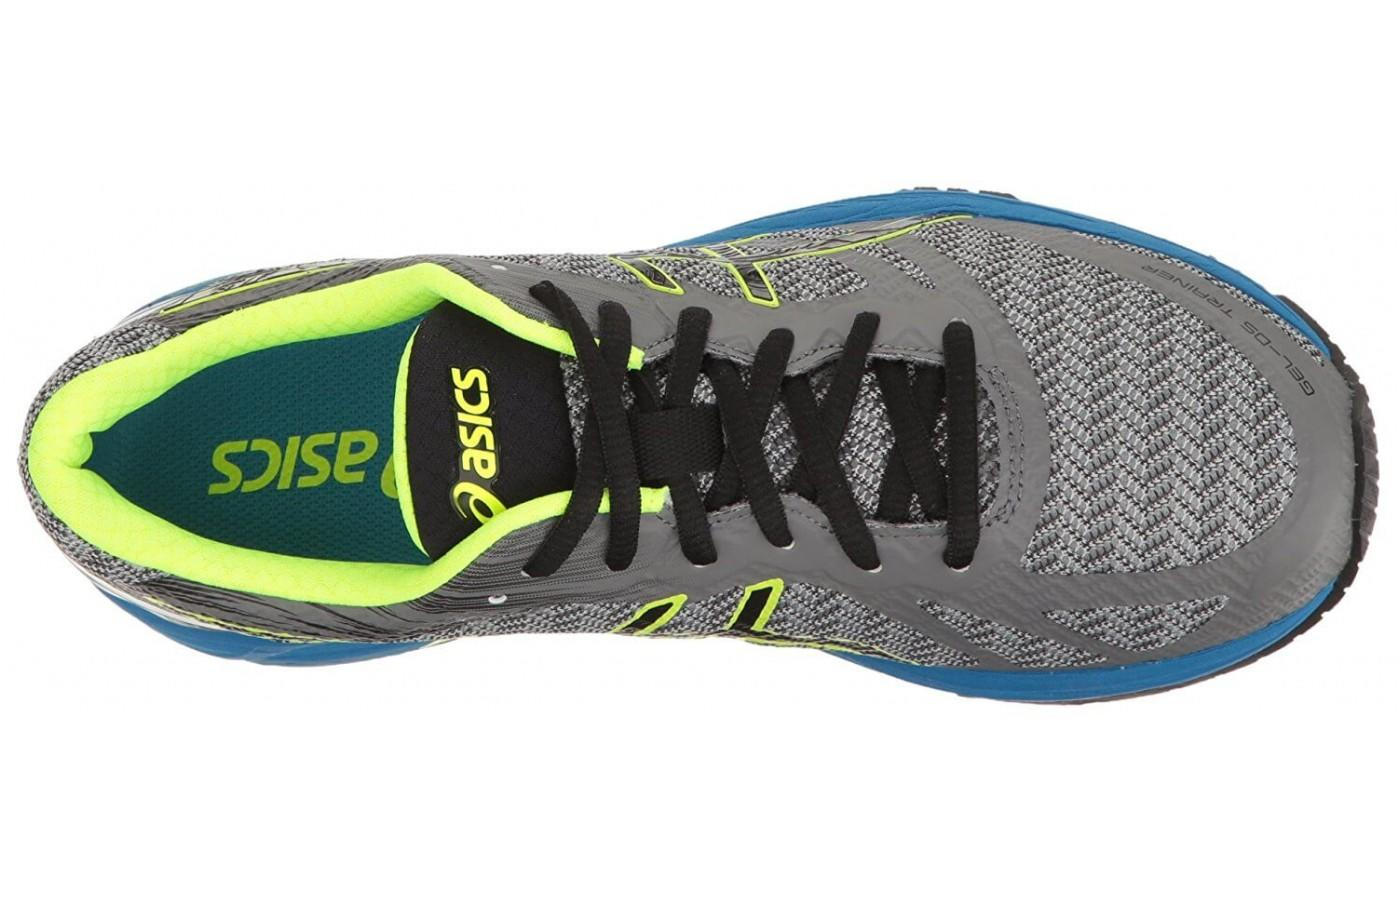 The Asics Gel DS Trainer 22 upper provides good support